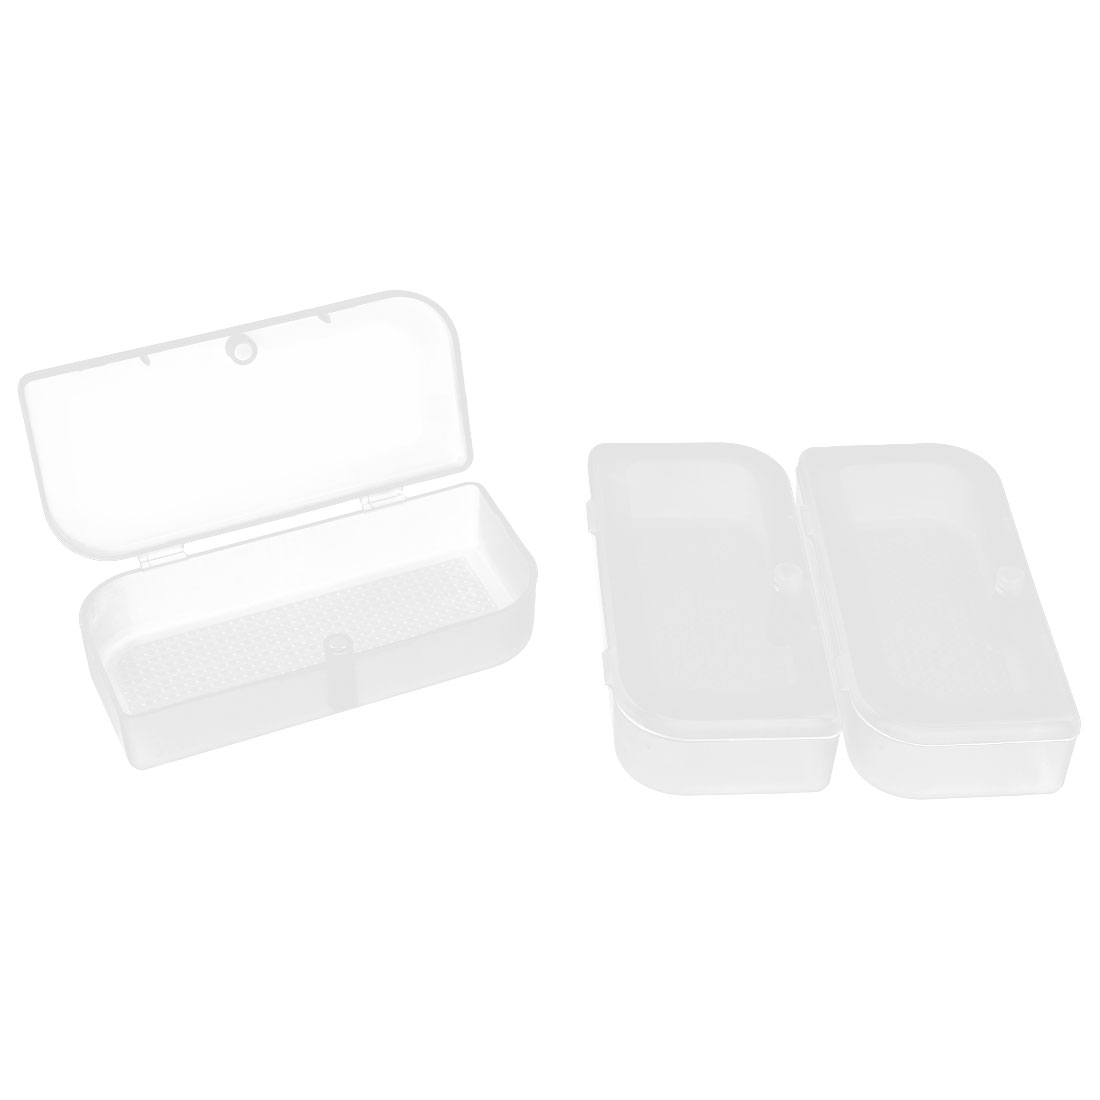 Plastic Rectangular Shape Earphone Storage Case Box Holder Container Clear 3 PCS